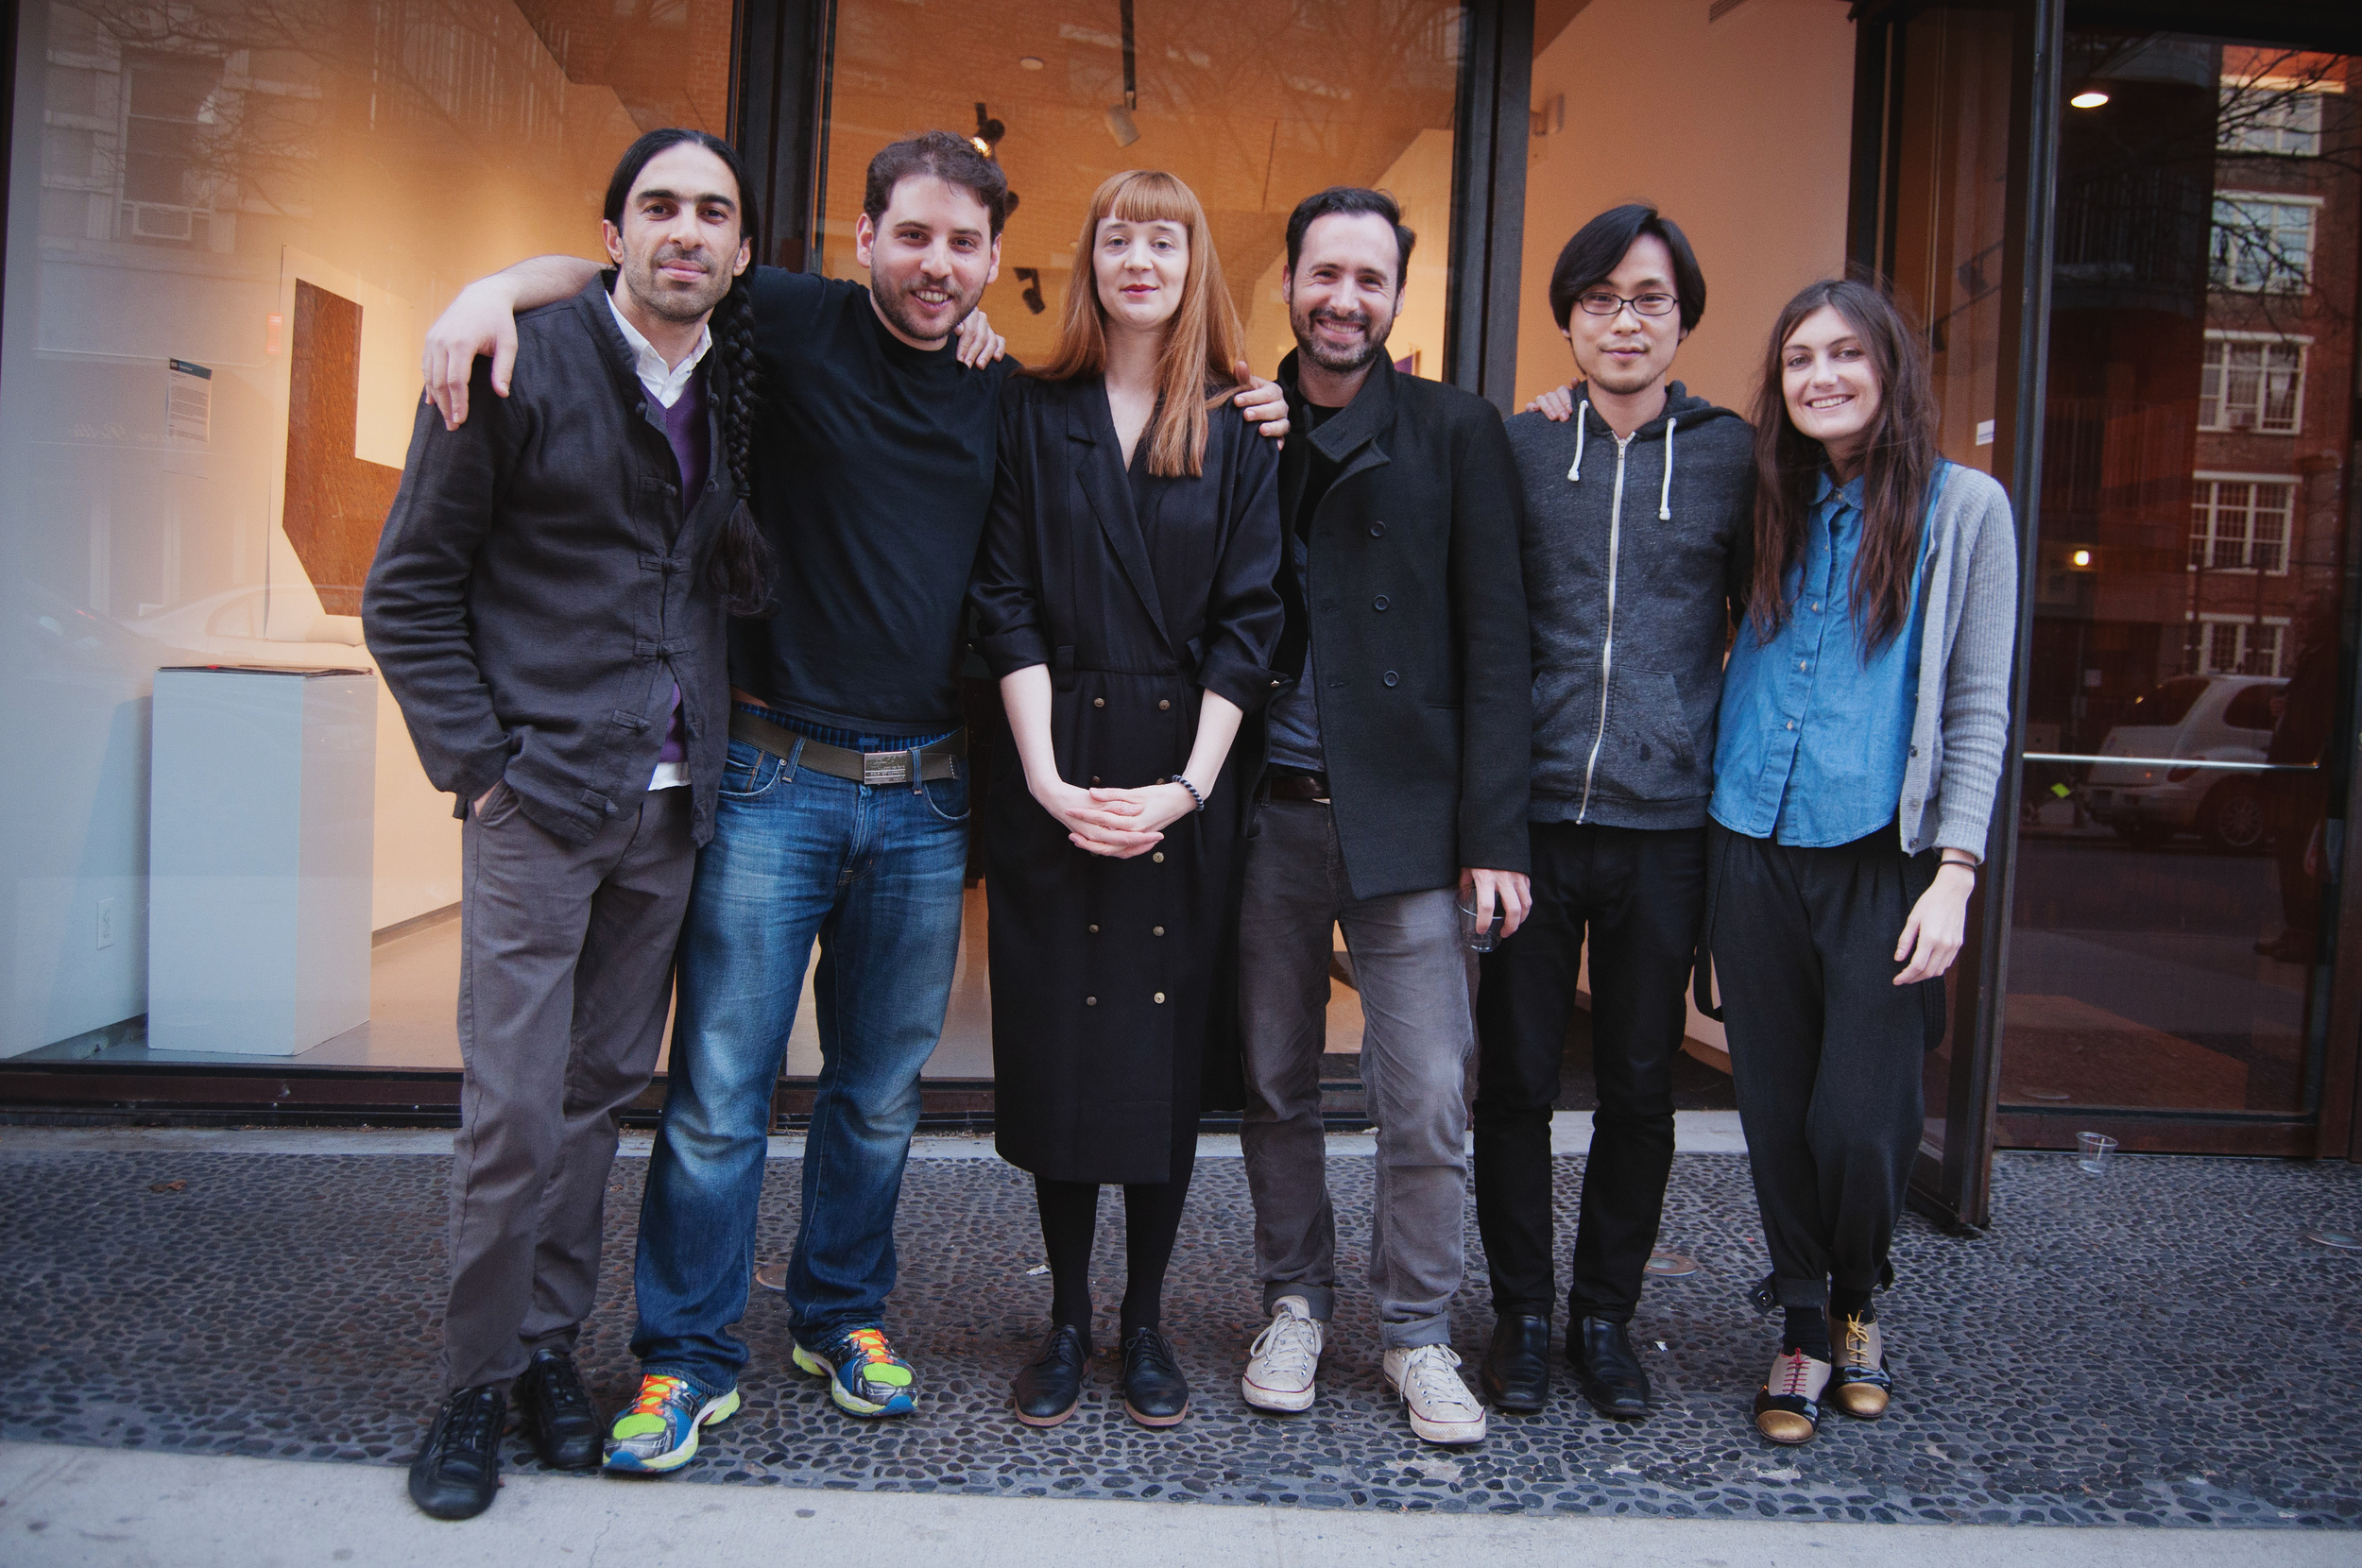 Vincent Bezuidenhout, Nima Chaichi, Nobushige Kono, Gil Lavi, Mariel Lebrija, and Anna Orlowska: Participants in the Photoglobal Program